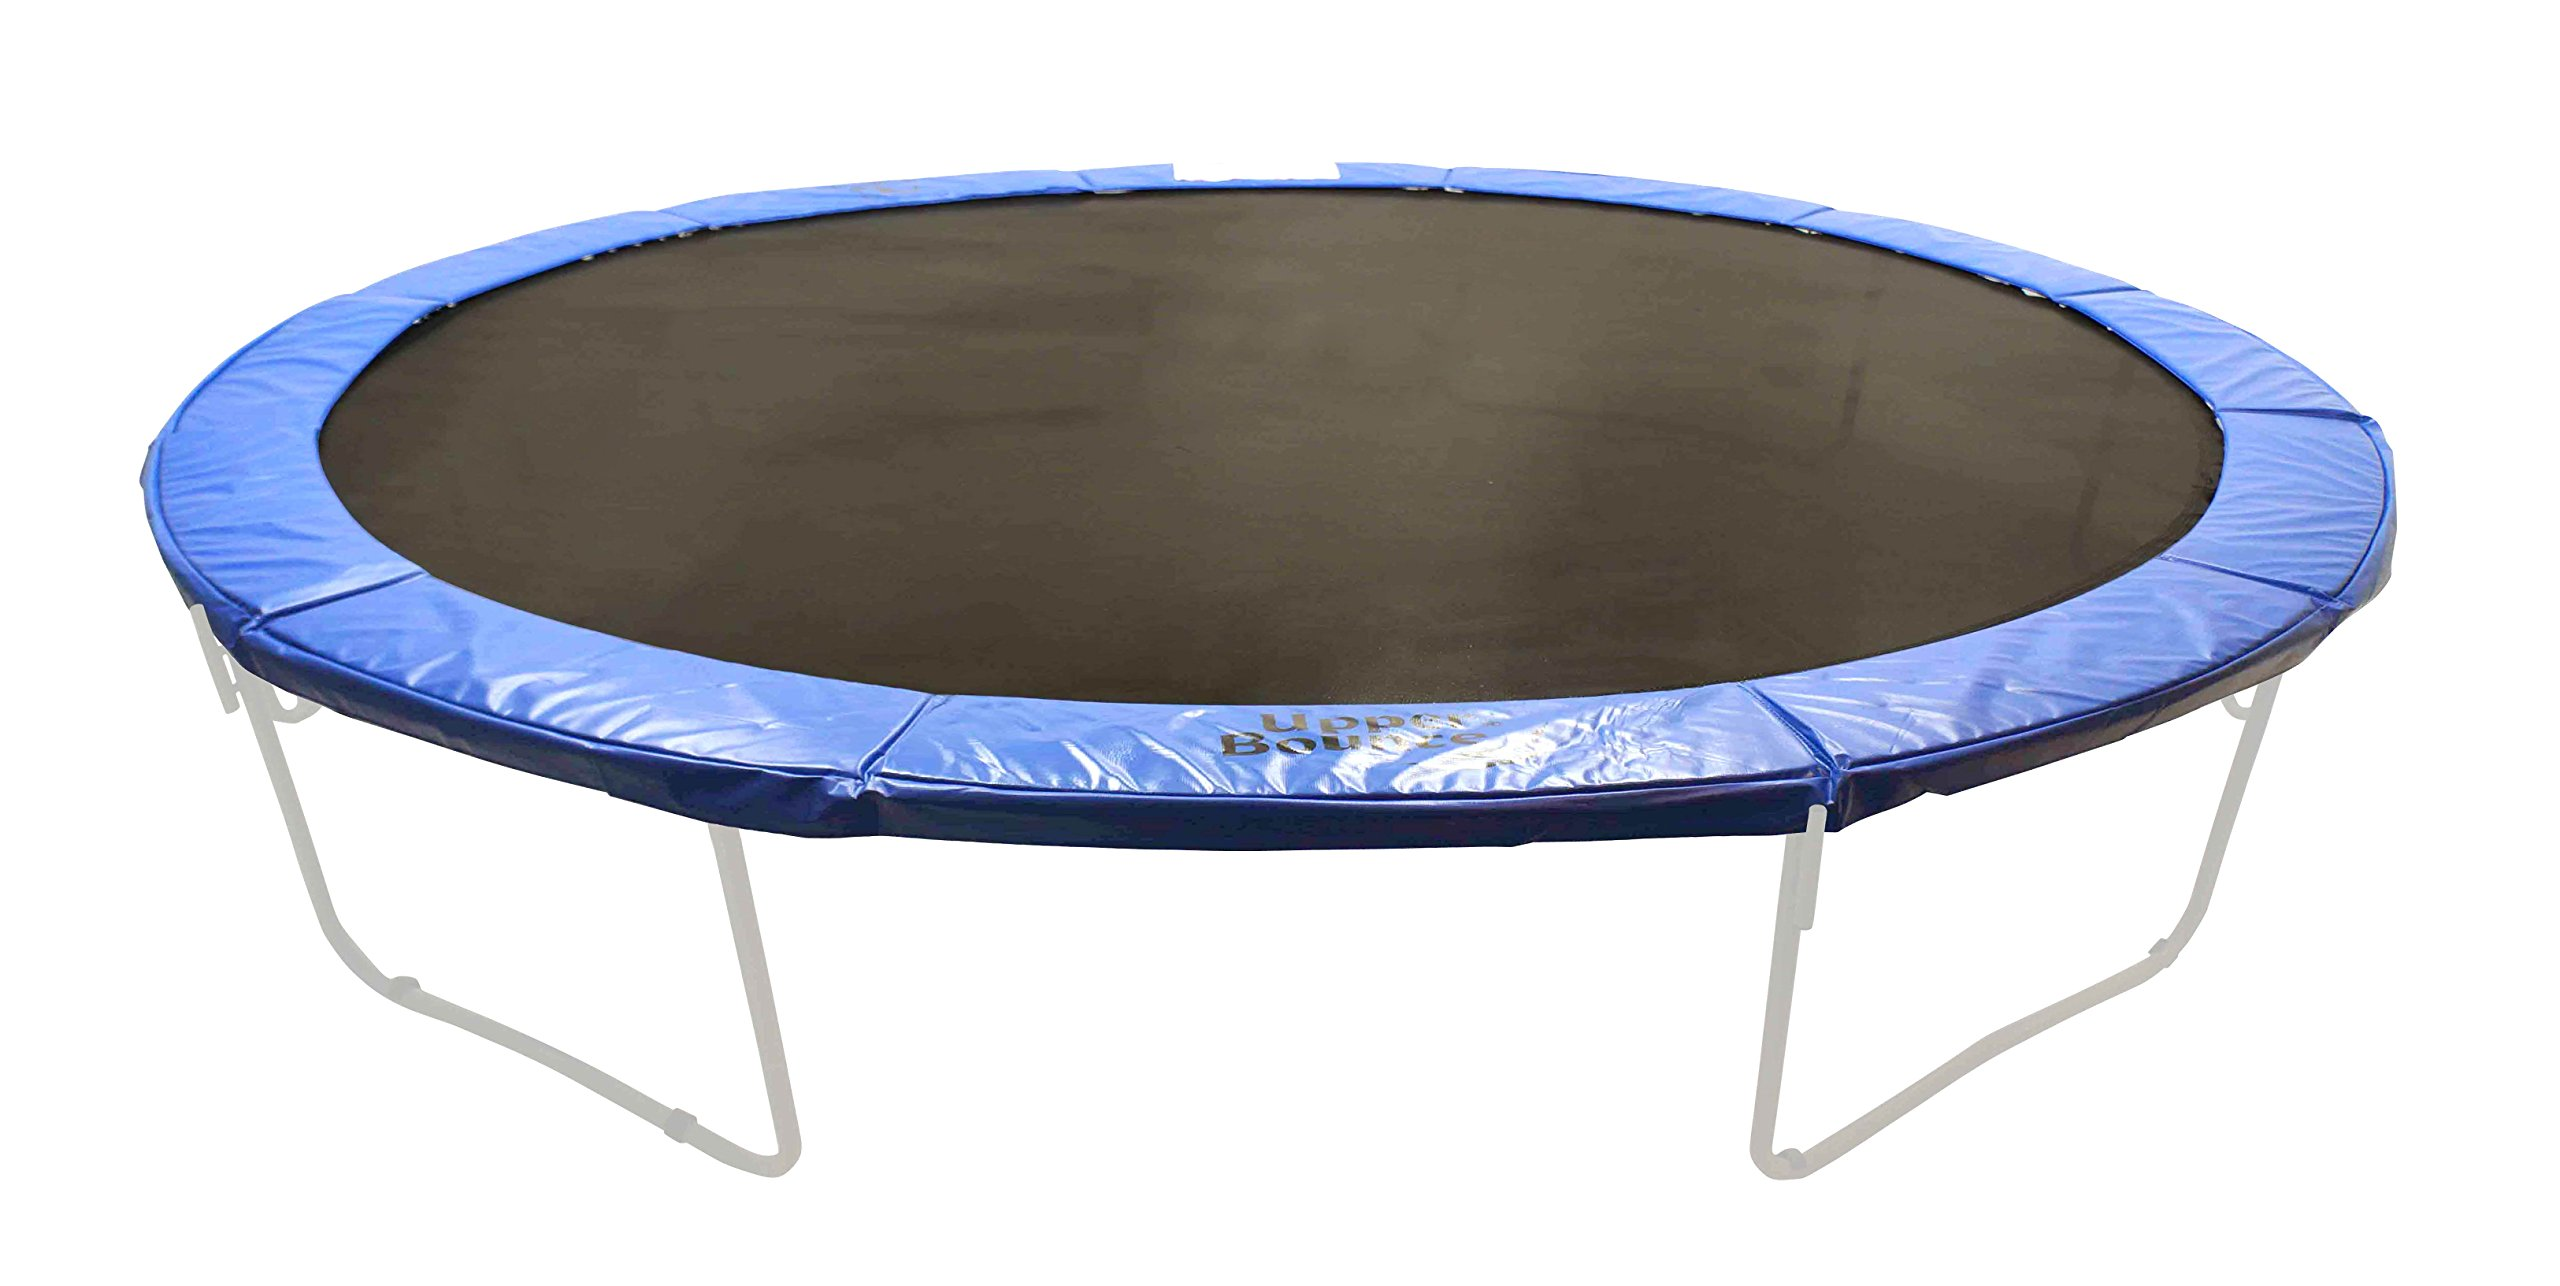 Upper Bounce Super Trampoline Safety Pad Spring Cover Fits for 17 x 15-Feet Oval Trampoline Frames, 10-Inch, Blue